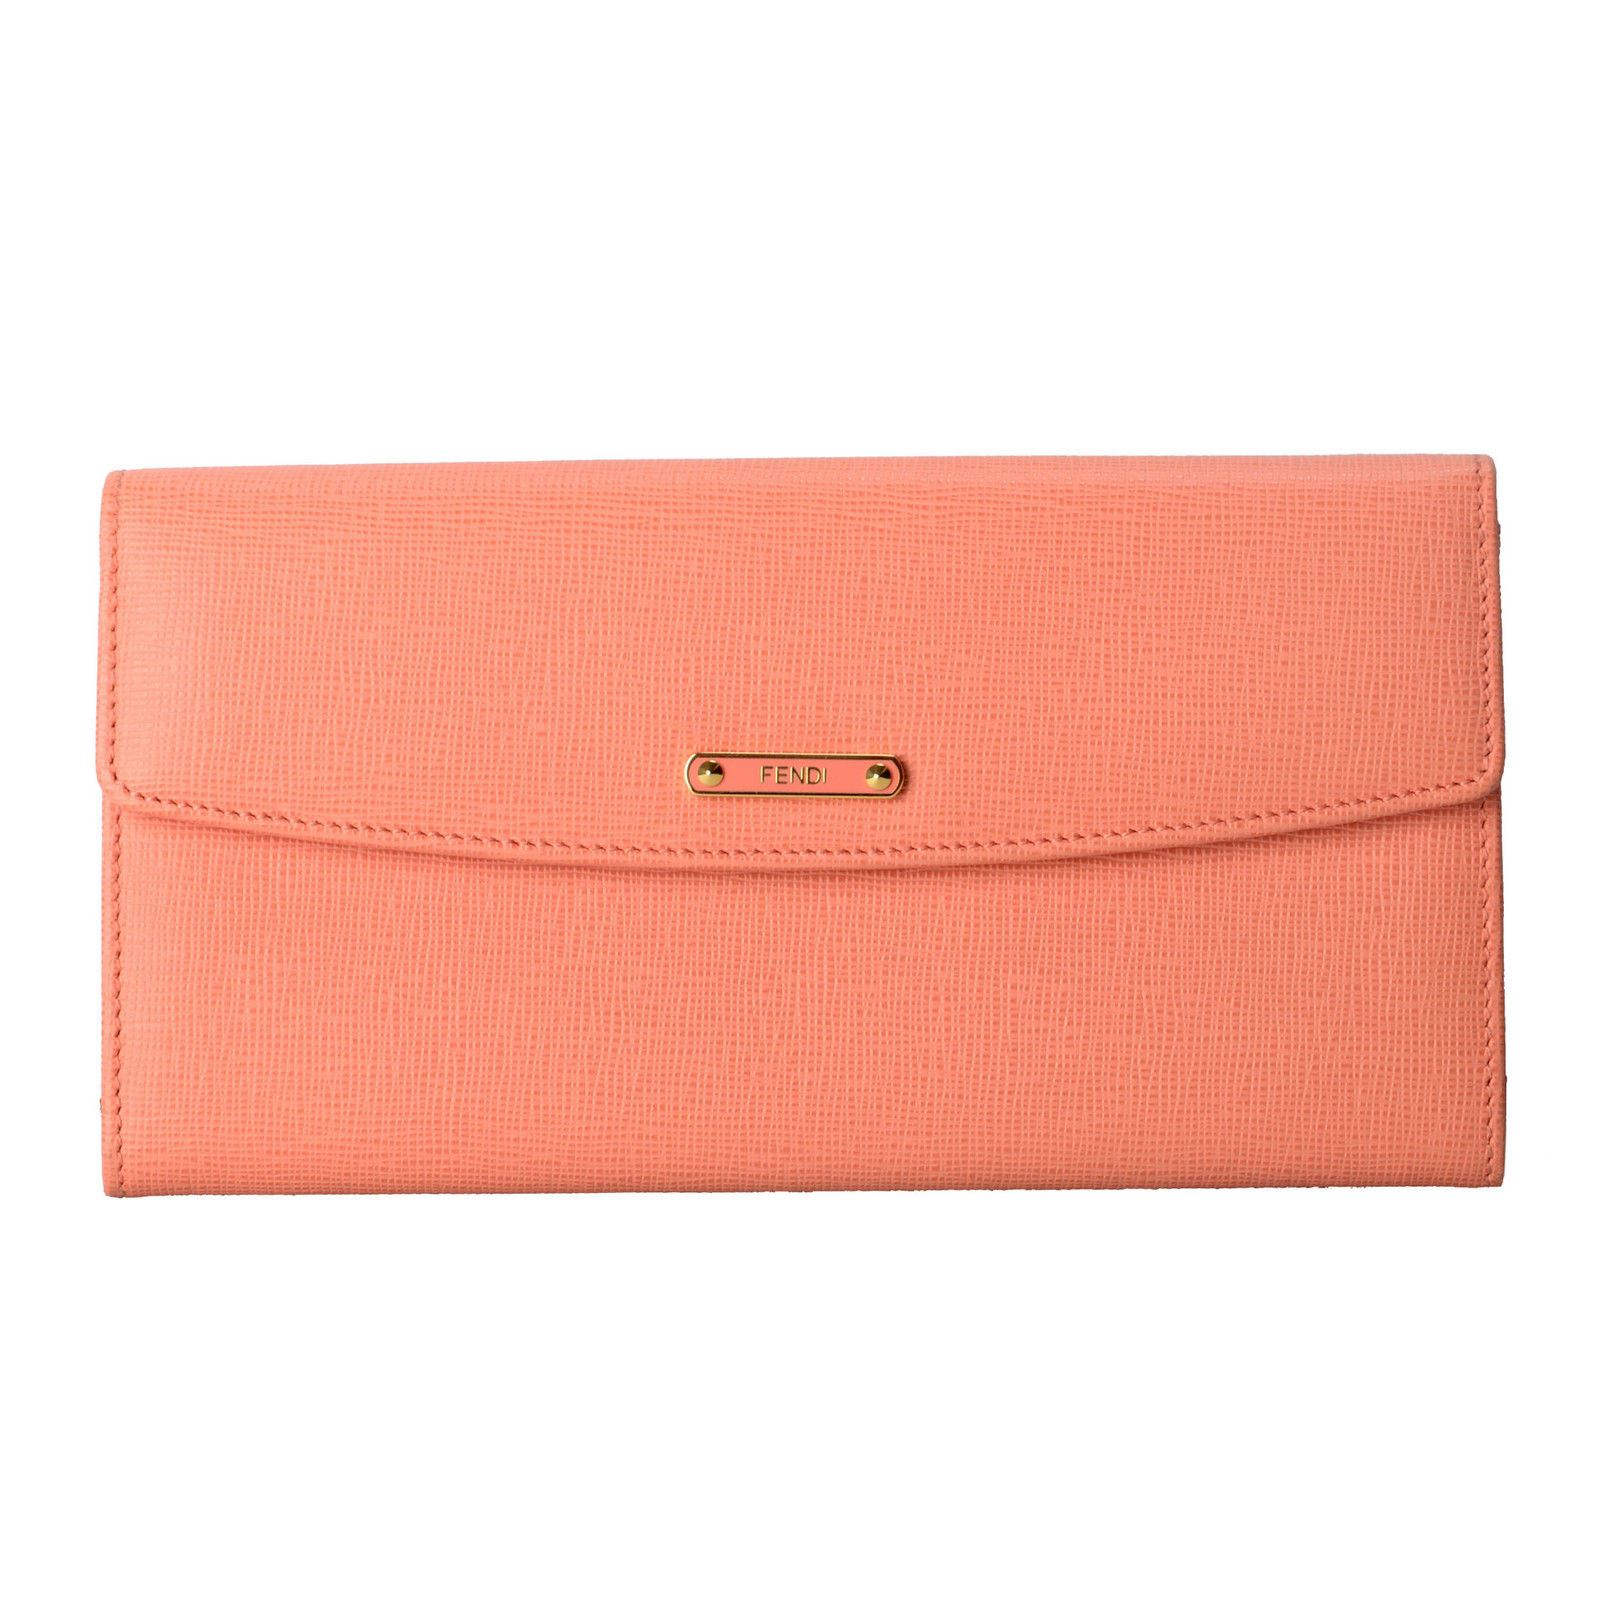 a95db47be3 Details about Fendi Women's Pink Saffiano Leather Continental Crayons Wallet